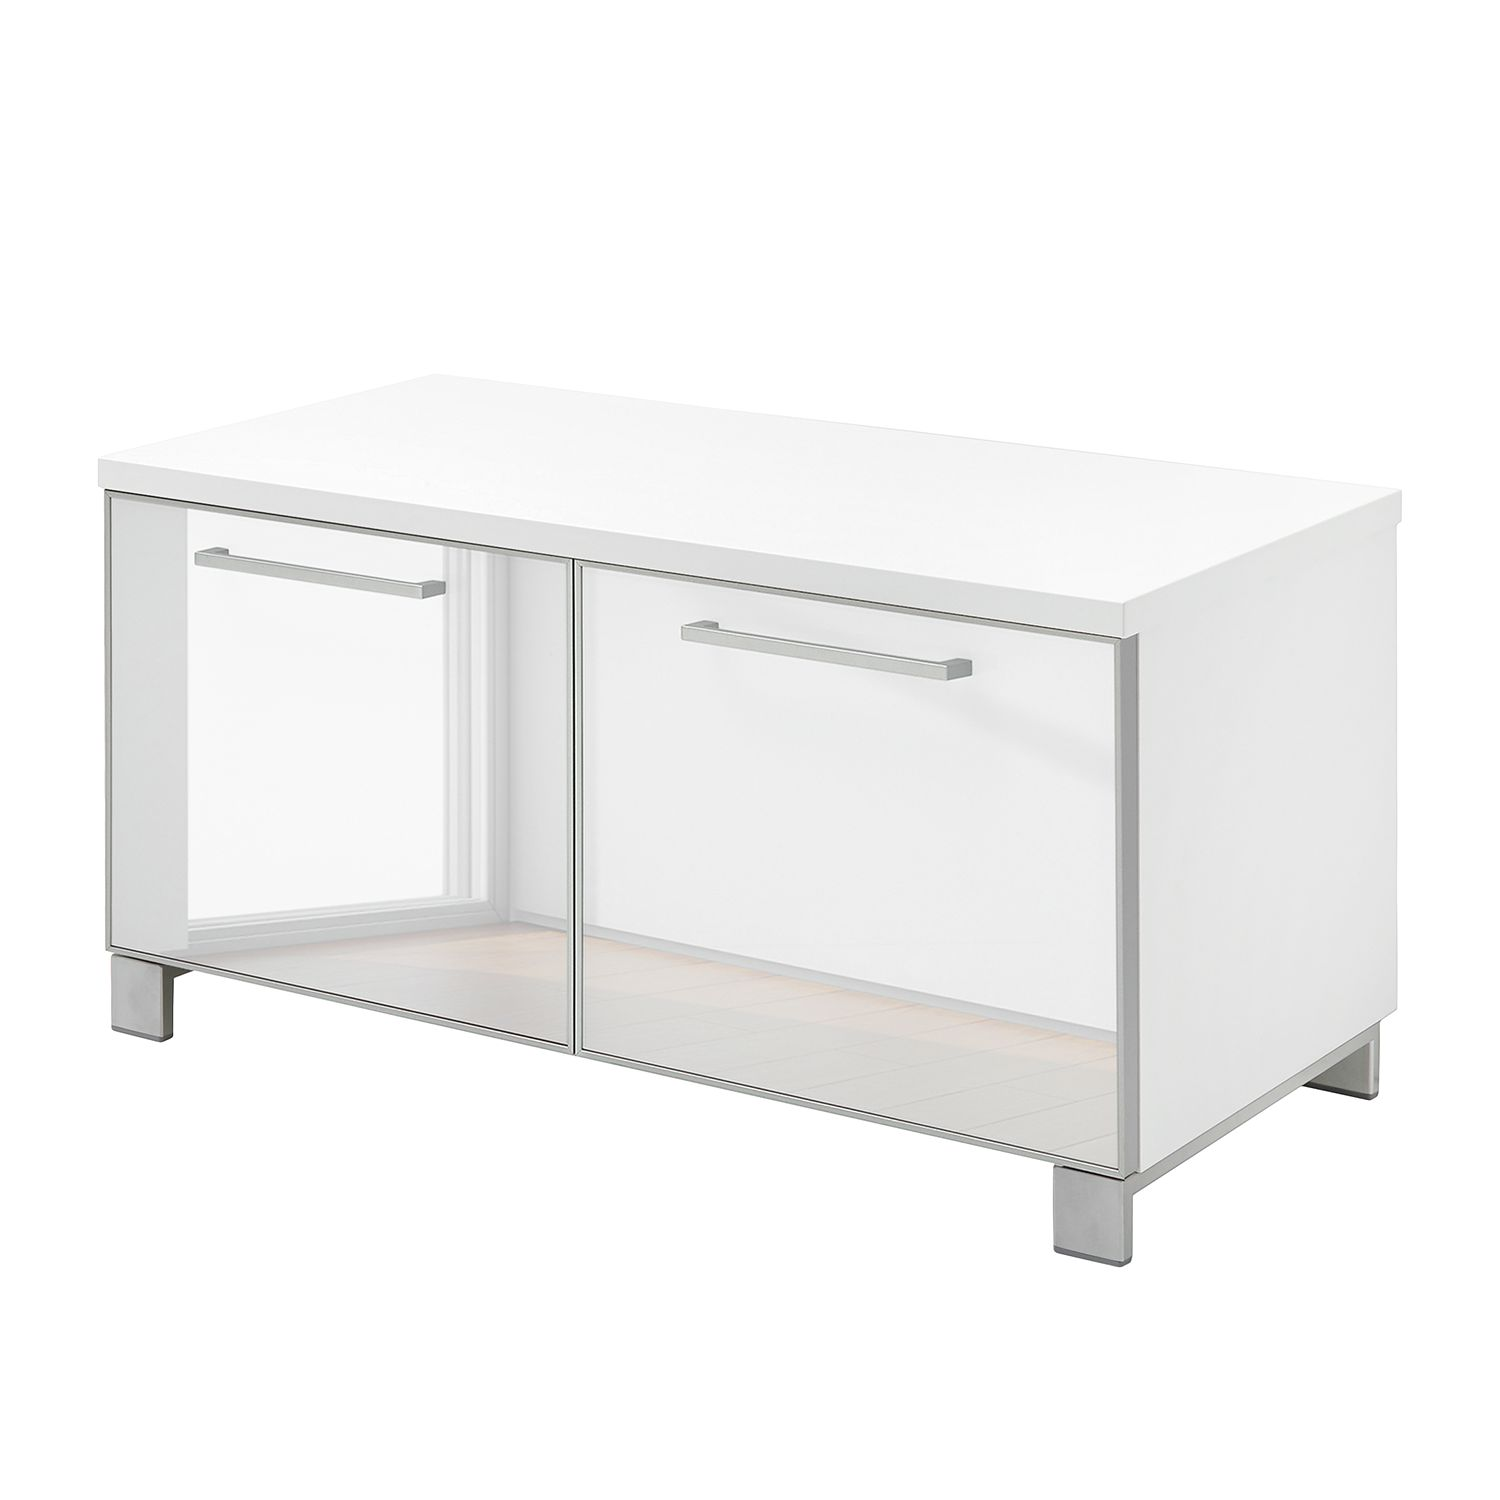 scrapeo a vendre banc ikea sigurd blanc. Black Bedroom Furniture Sets. Home Design Ideas